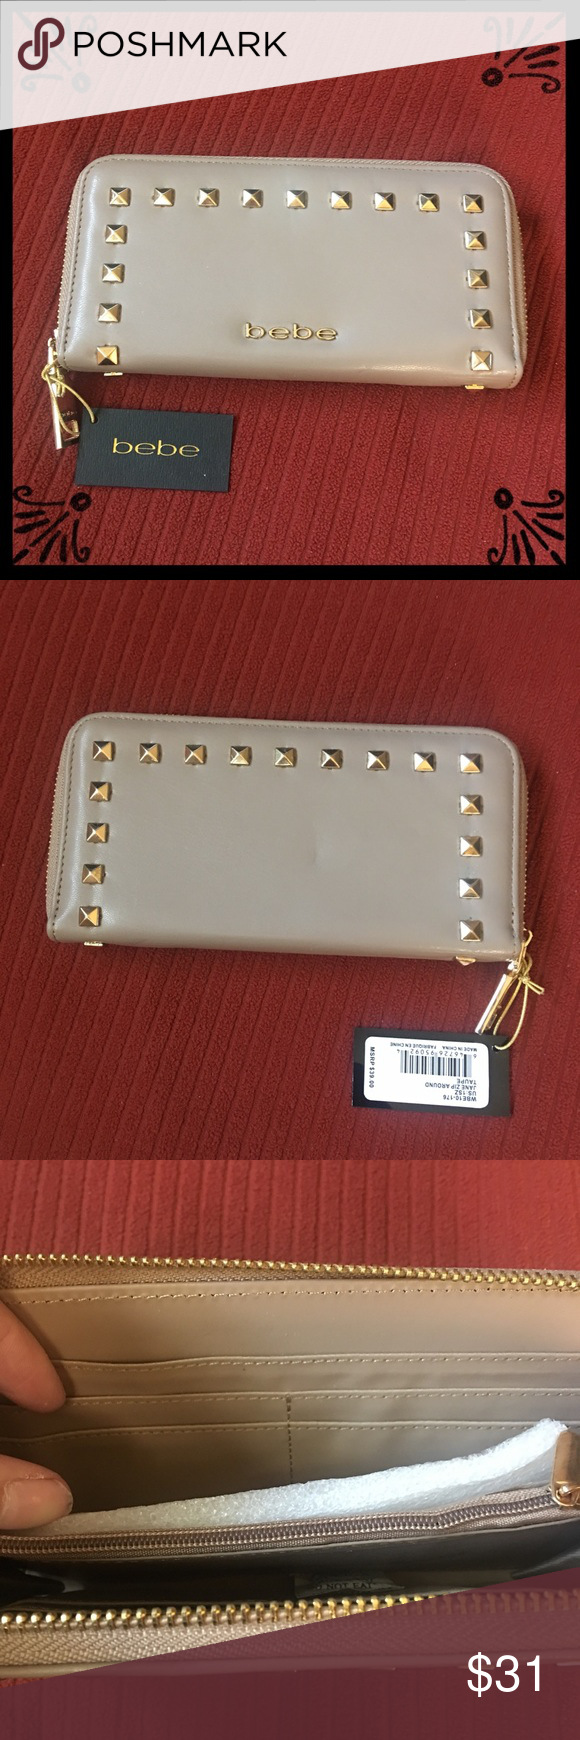 9de85a45d8 Bebe Taupe Wallet w Gold Studs ▫ brand new with tags ▫ bebe jane zip around  in taupe w gold studs ▫ 8 card holders, 2 long pockets, ...